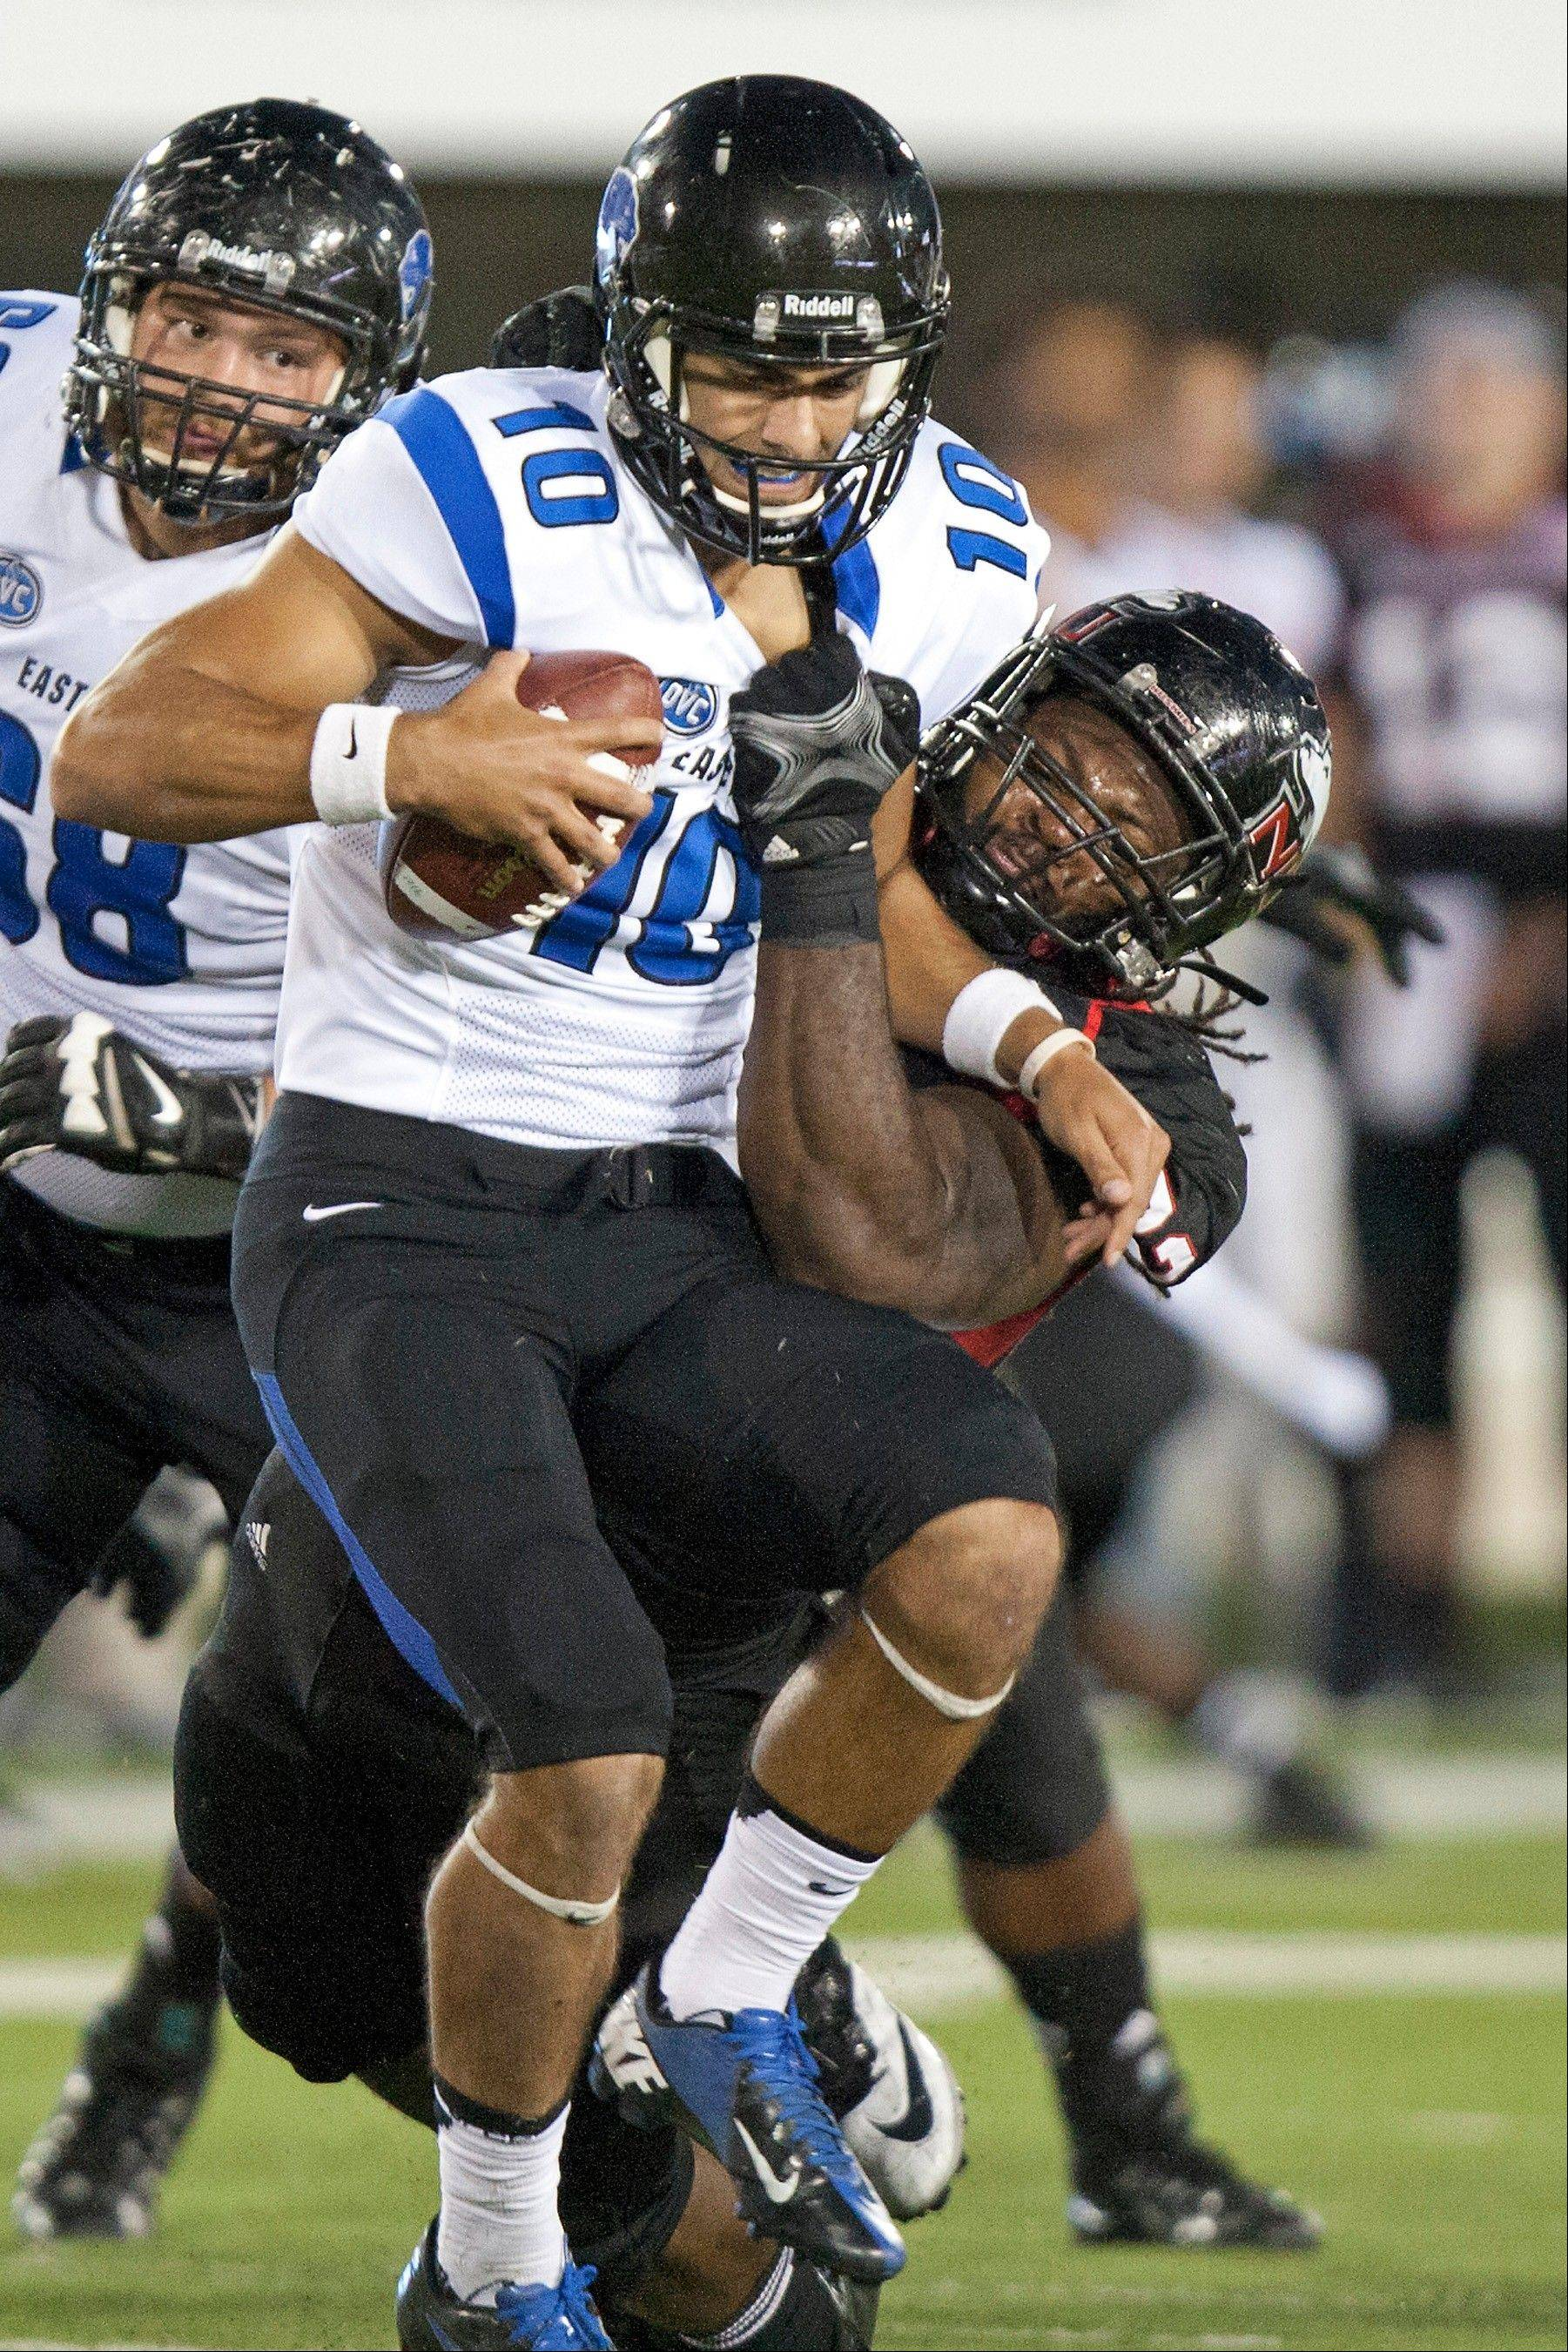 Ken Bishop of Northern Illinois brings down Eastern Illinois quarterback Jimmy Garoppolo in their high-scoring game Saturday. Garoppolo got EIU off to a 20-0 start but NIU came back to win and run its unbeaten streak at Huskie Stadium to 22-0.